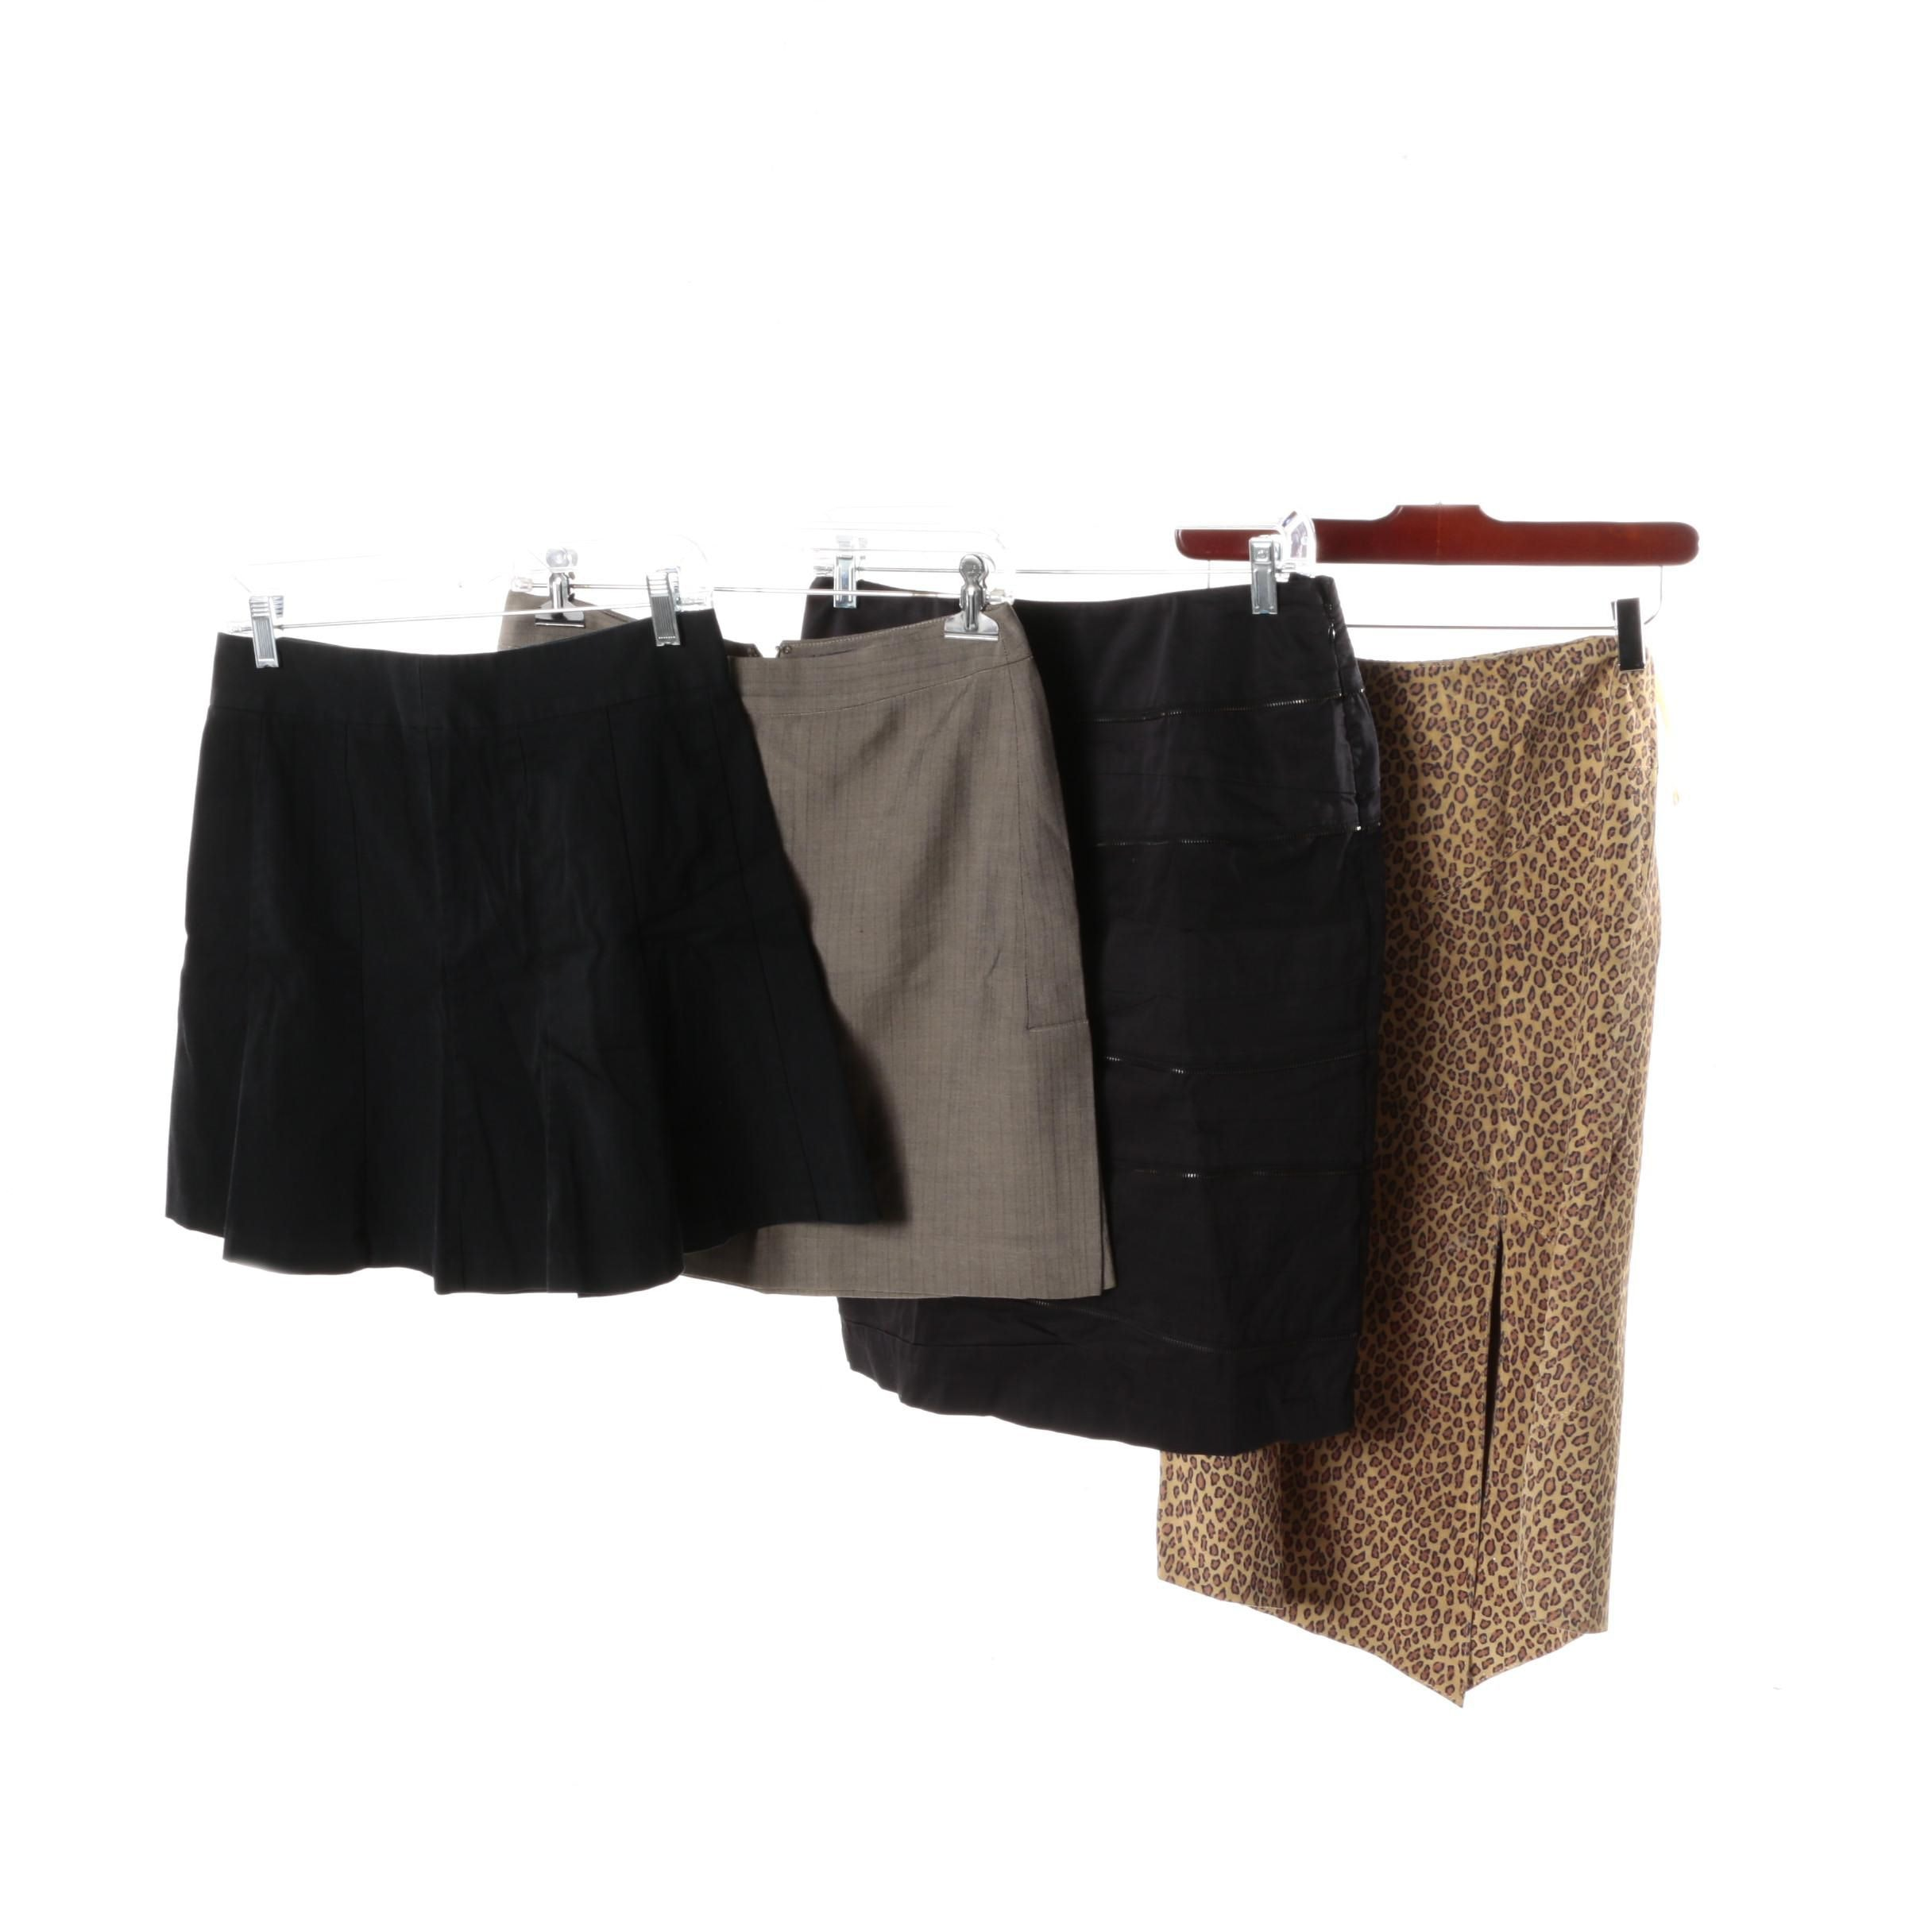 Women's Skirts Including DKNY Essentials